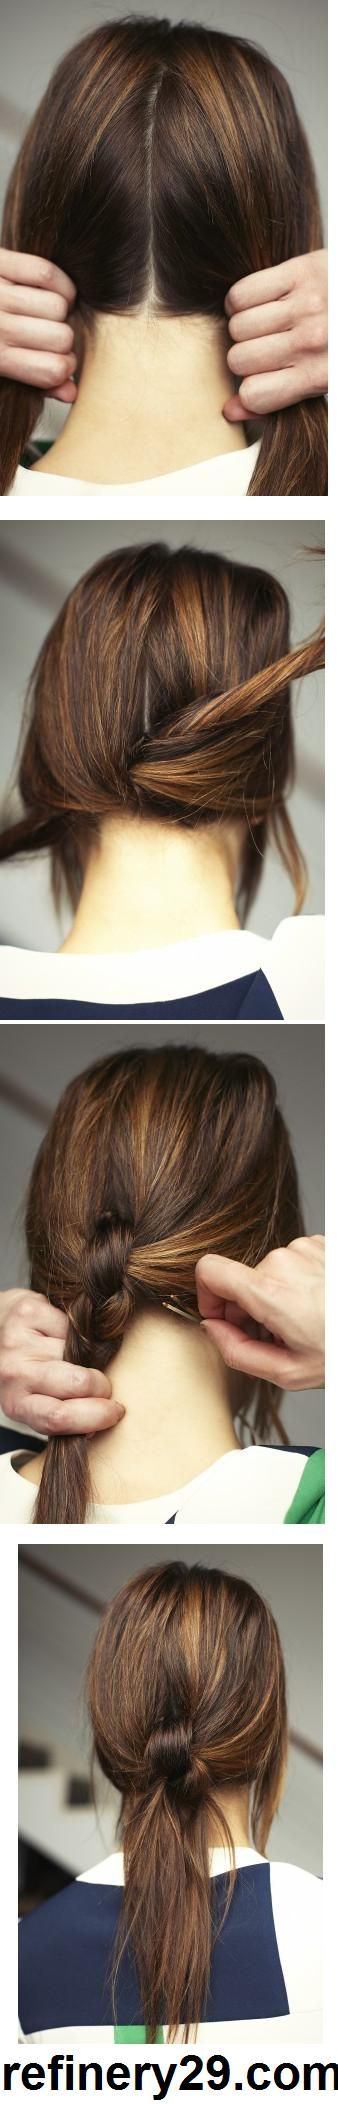 Knotty Girl Ponytail. #hair #ponytail